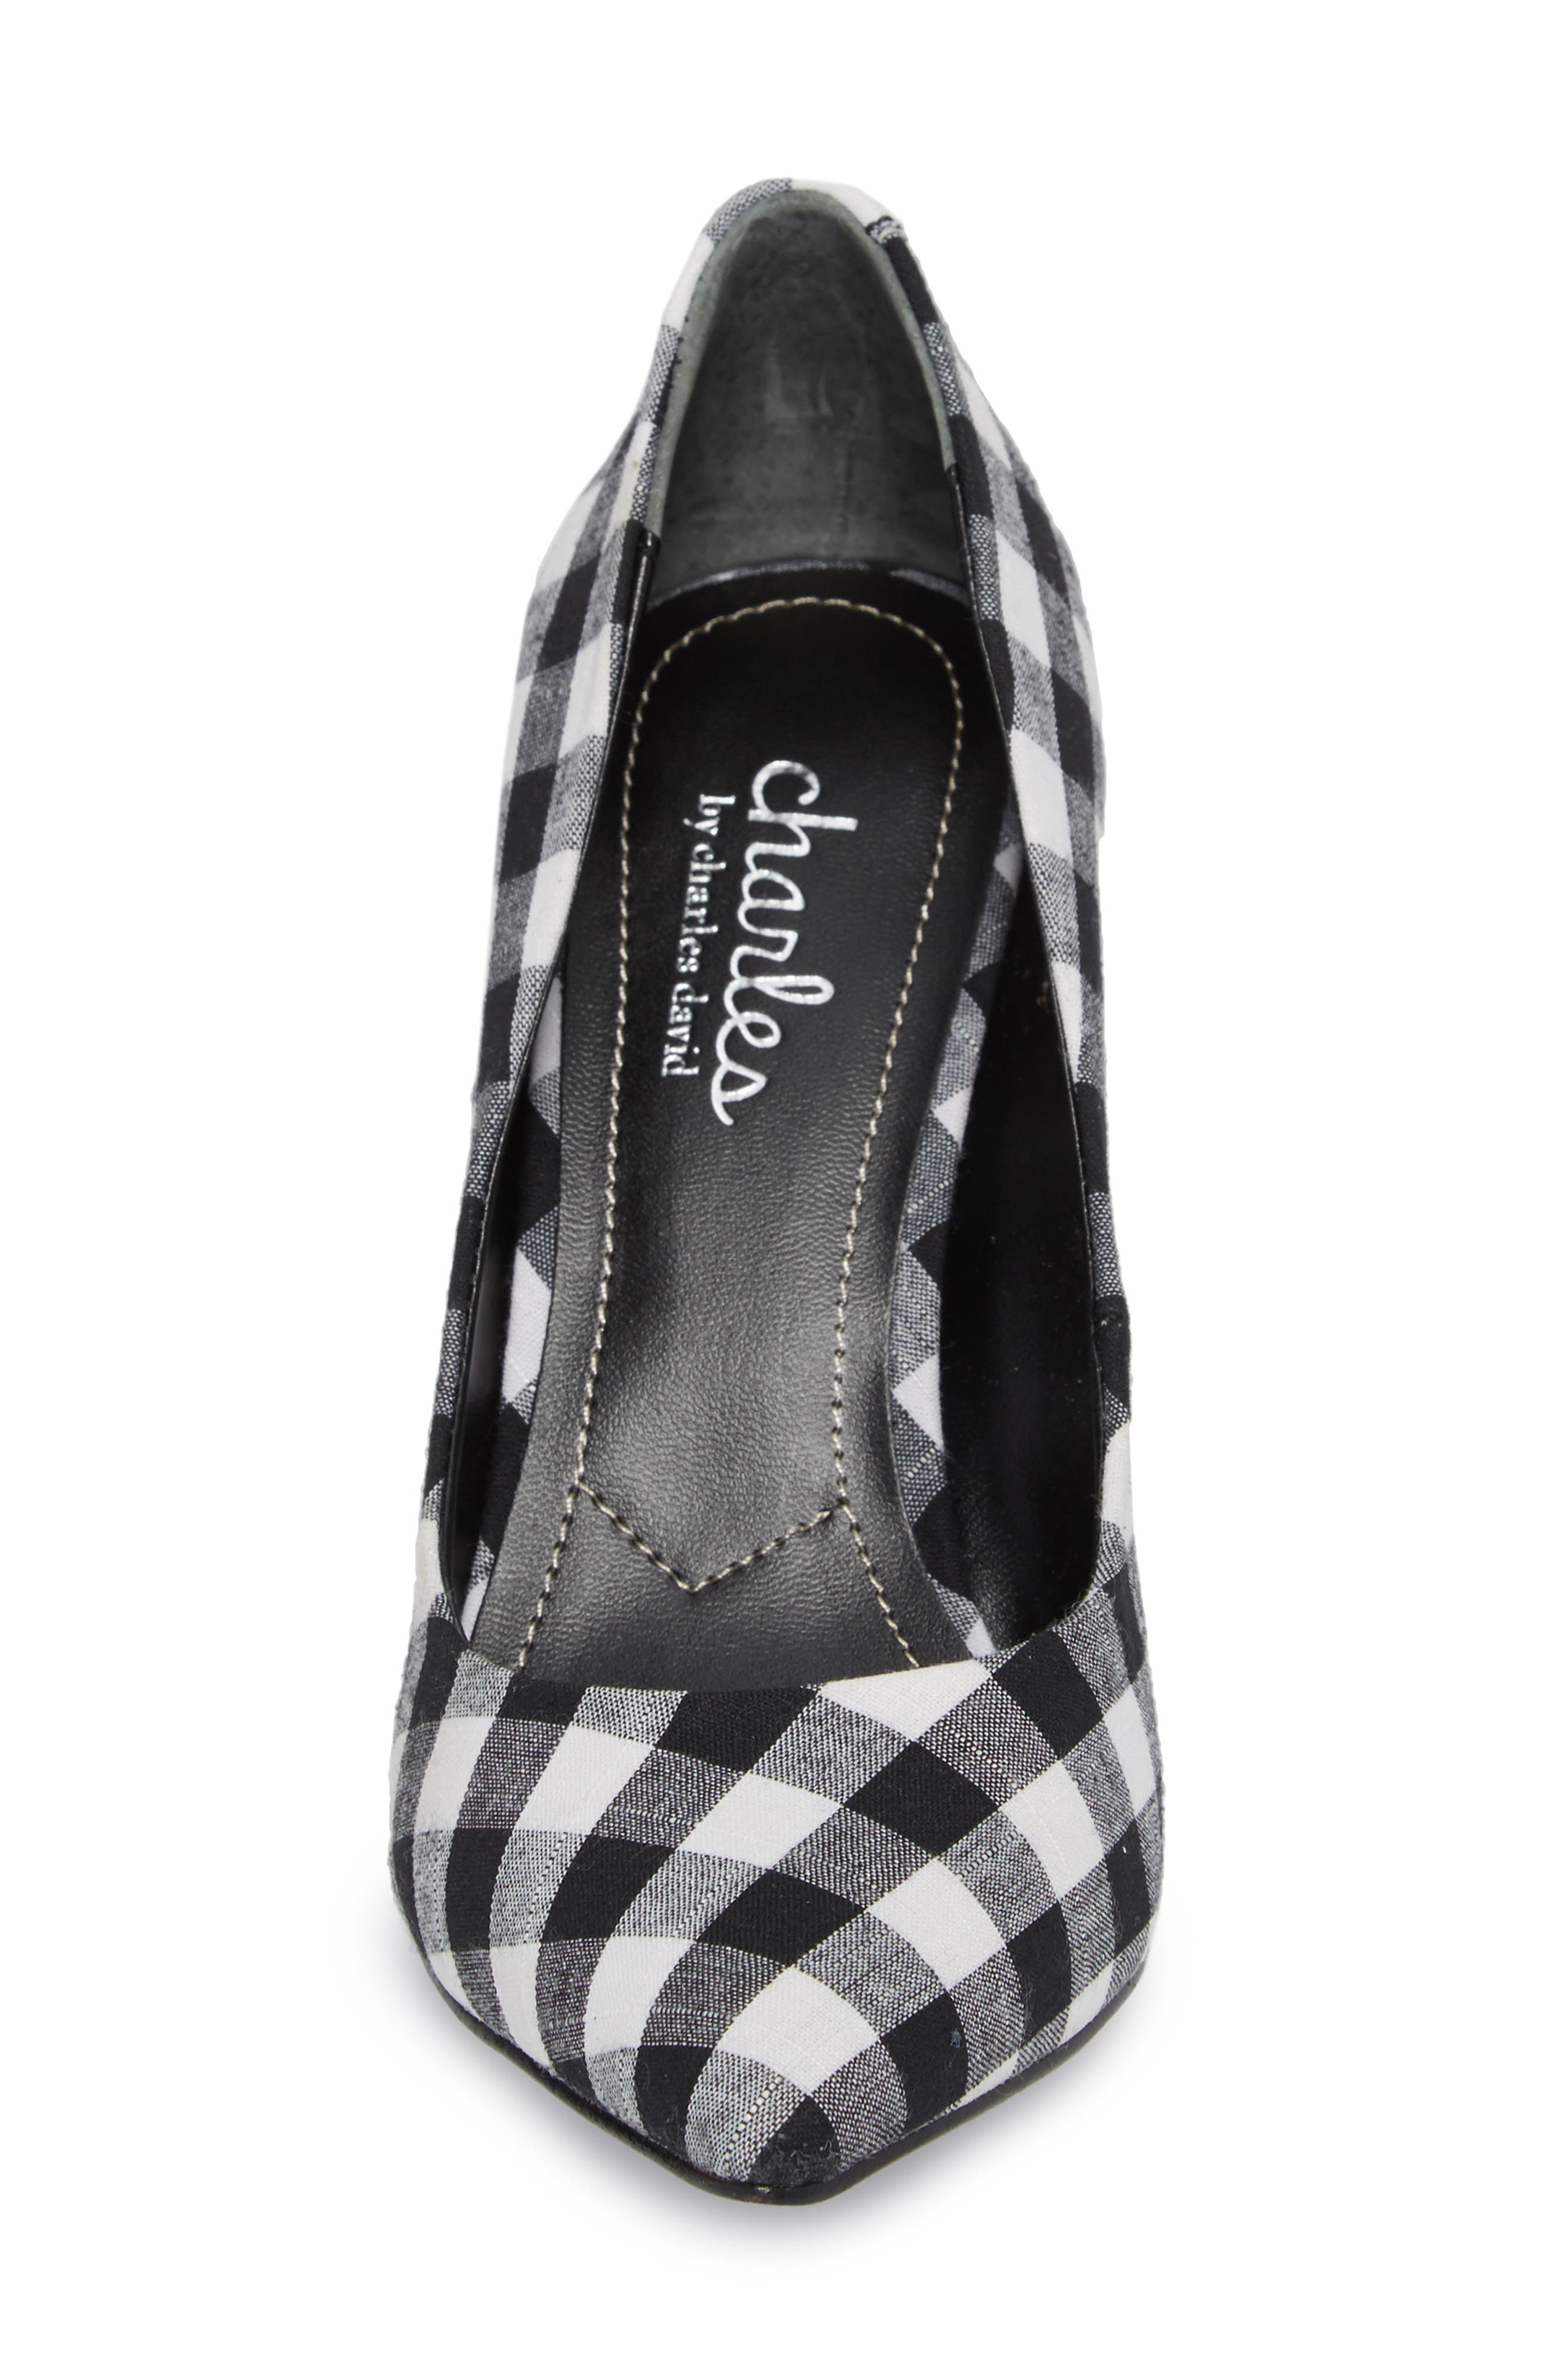 Maxx Pointy Toe Pump,                             Alternate thumbnail 4, color,                             BLACK/ WHITE GINGHAM FABRIC